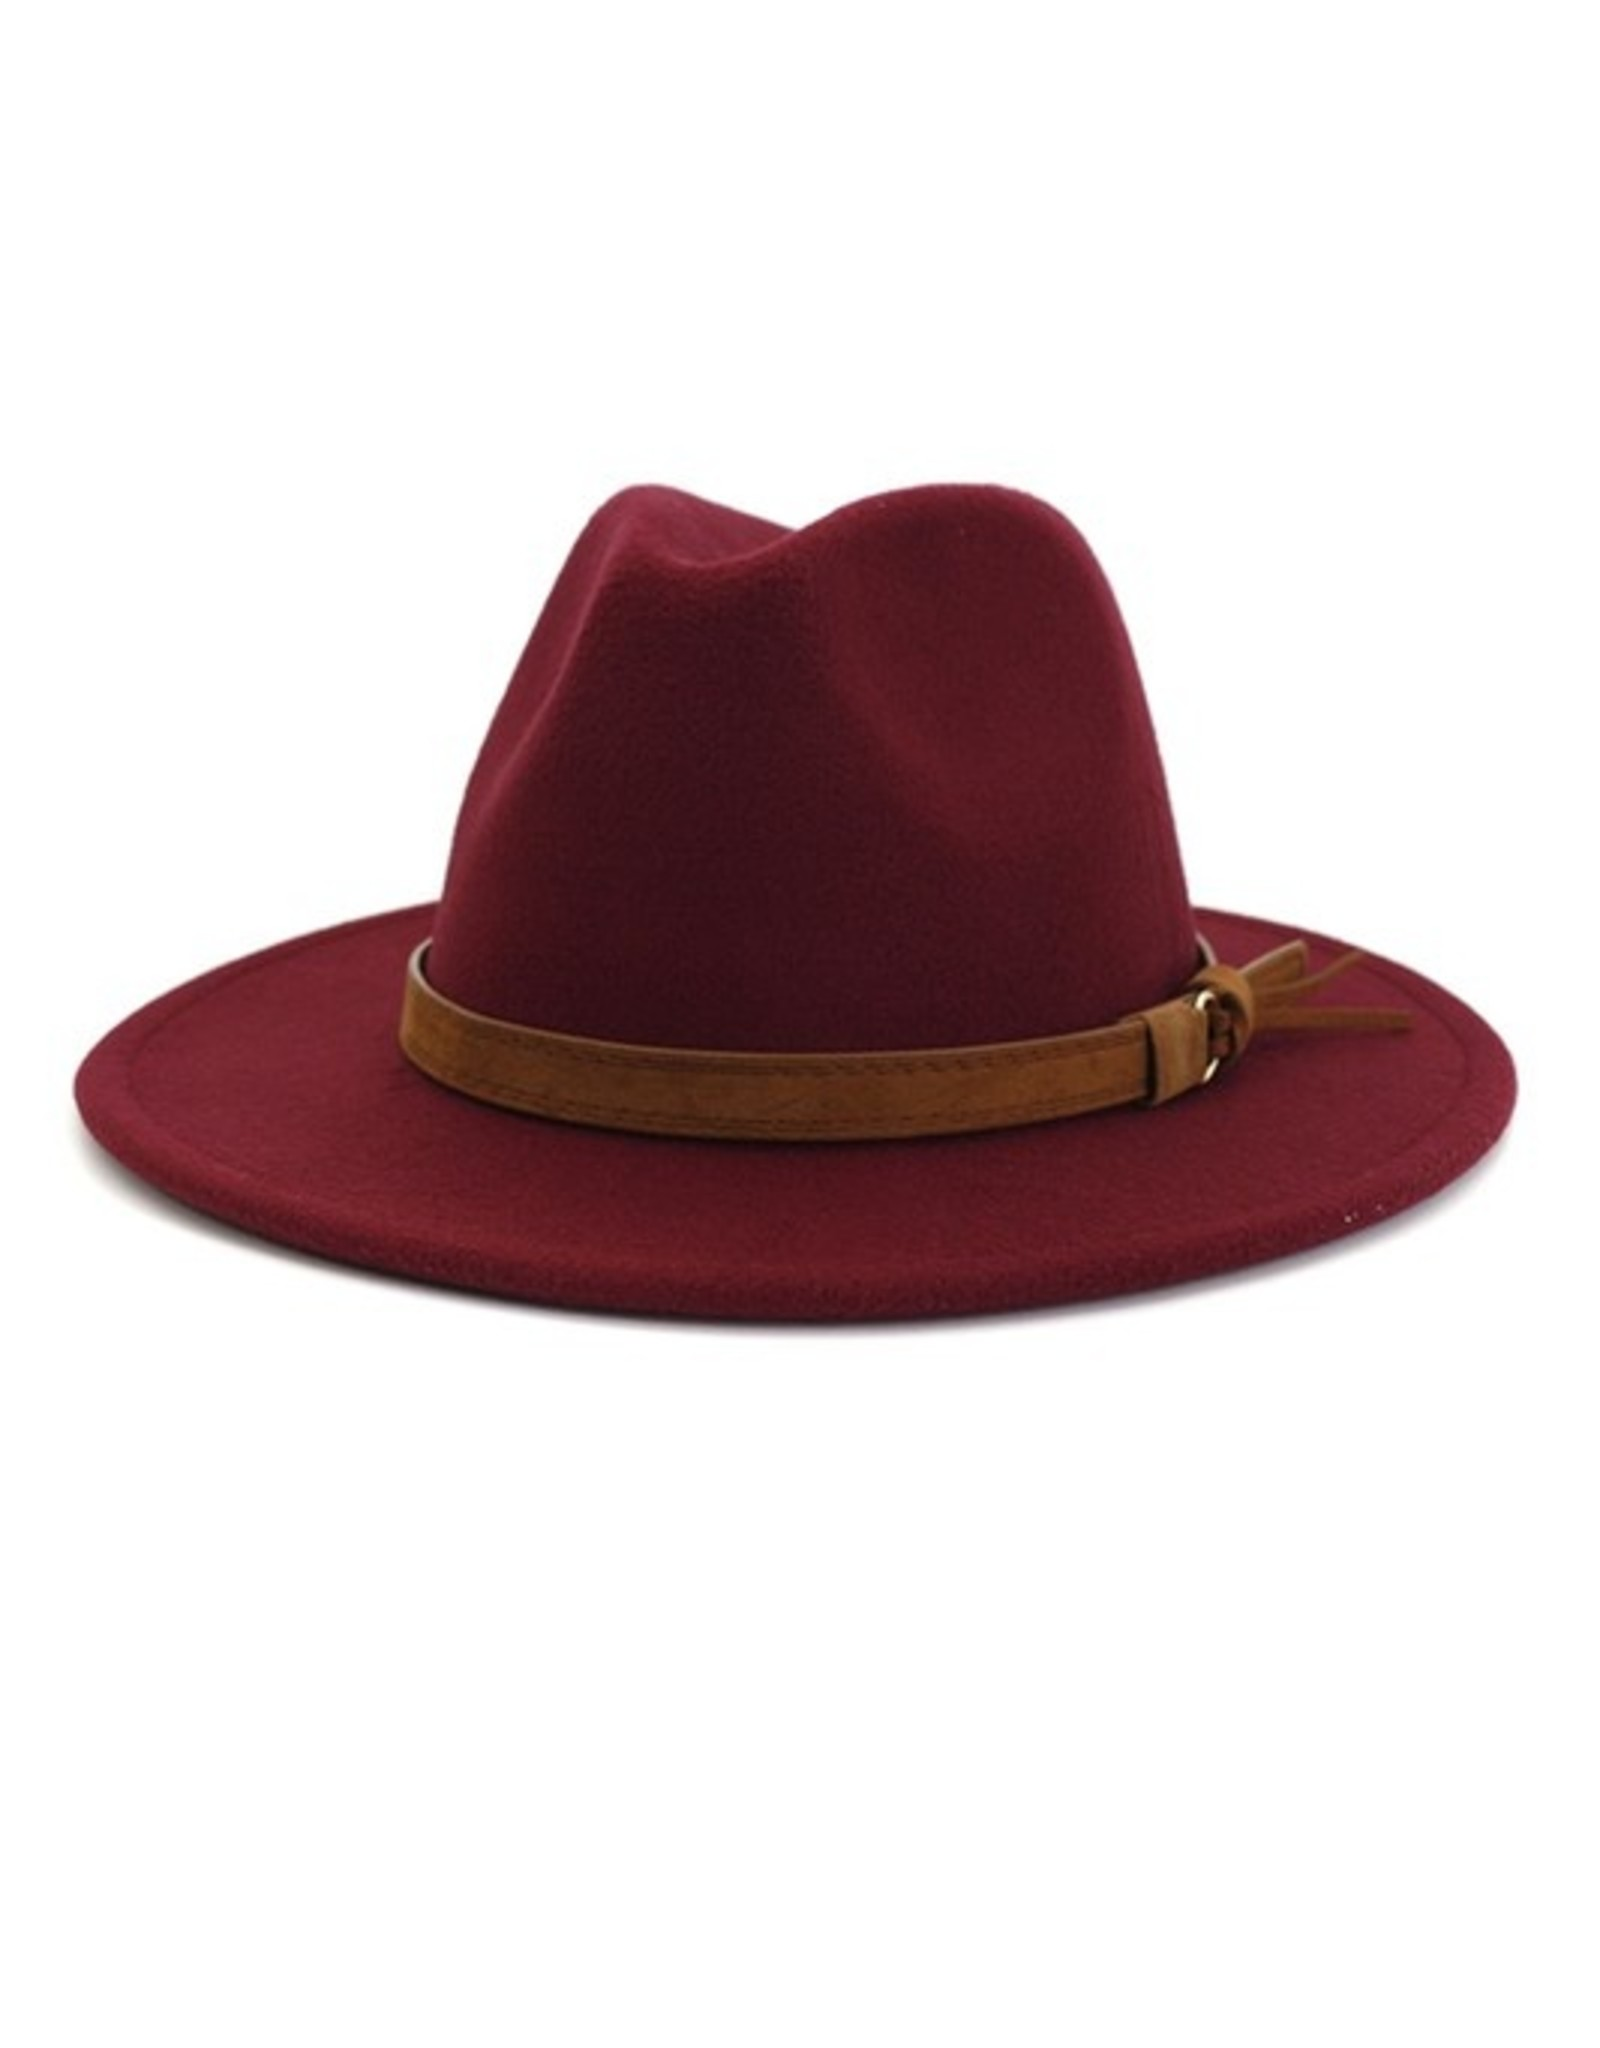 Wink Flat Brim Hat with Brown Hat Band